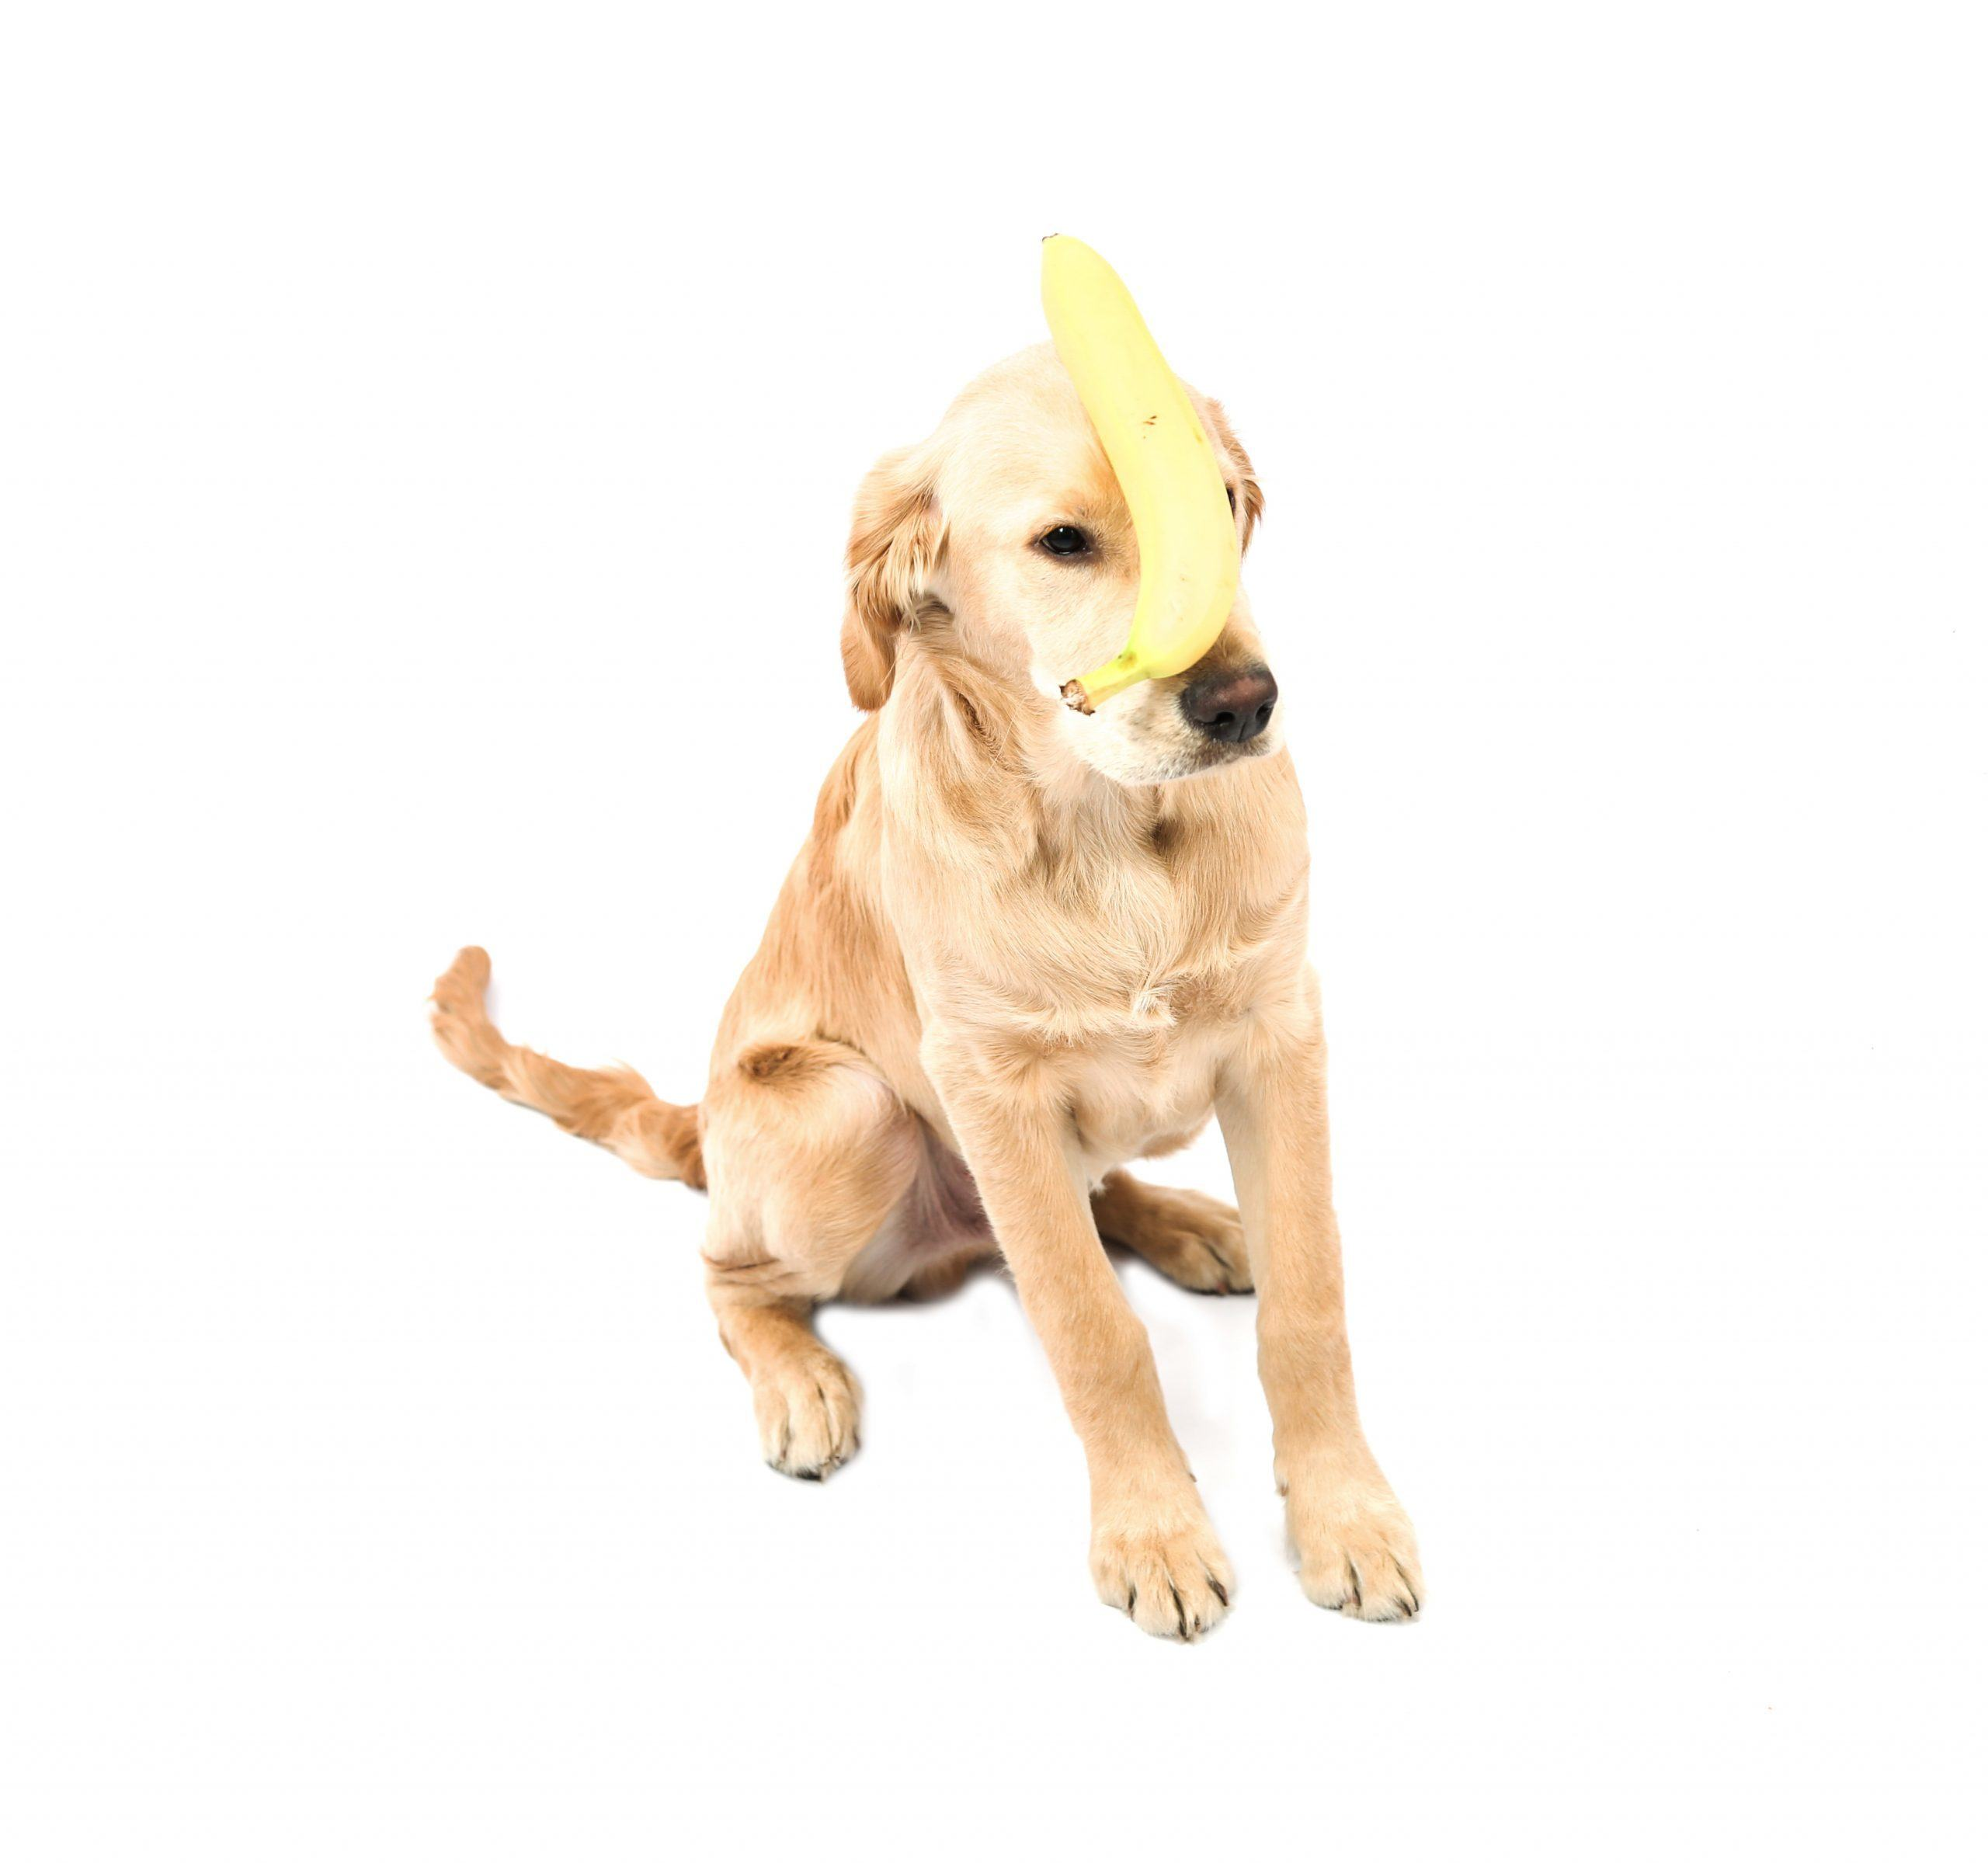 dog and a banana